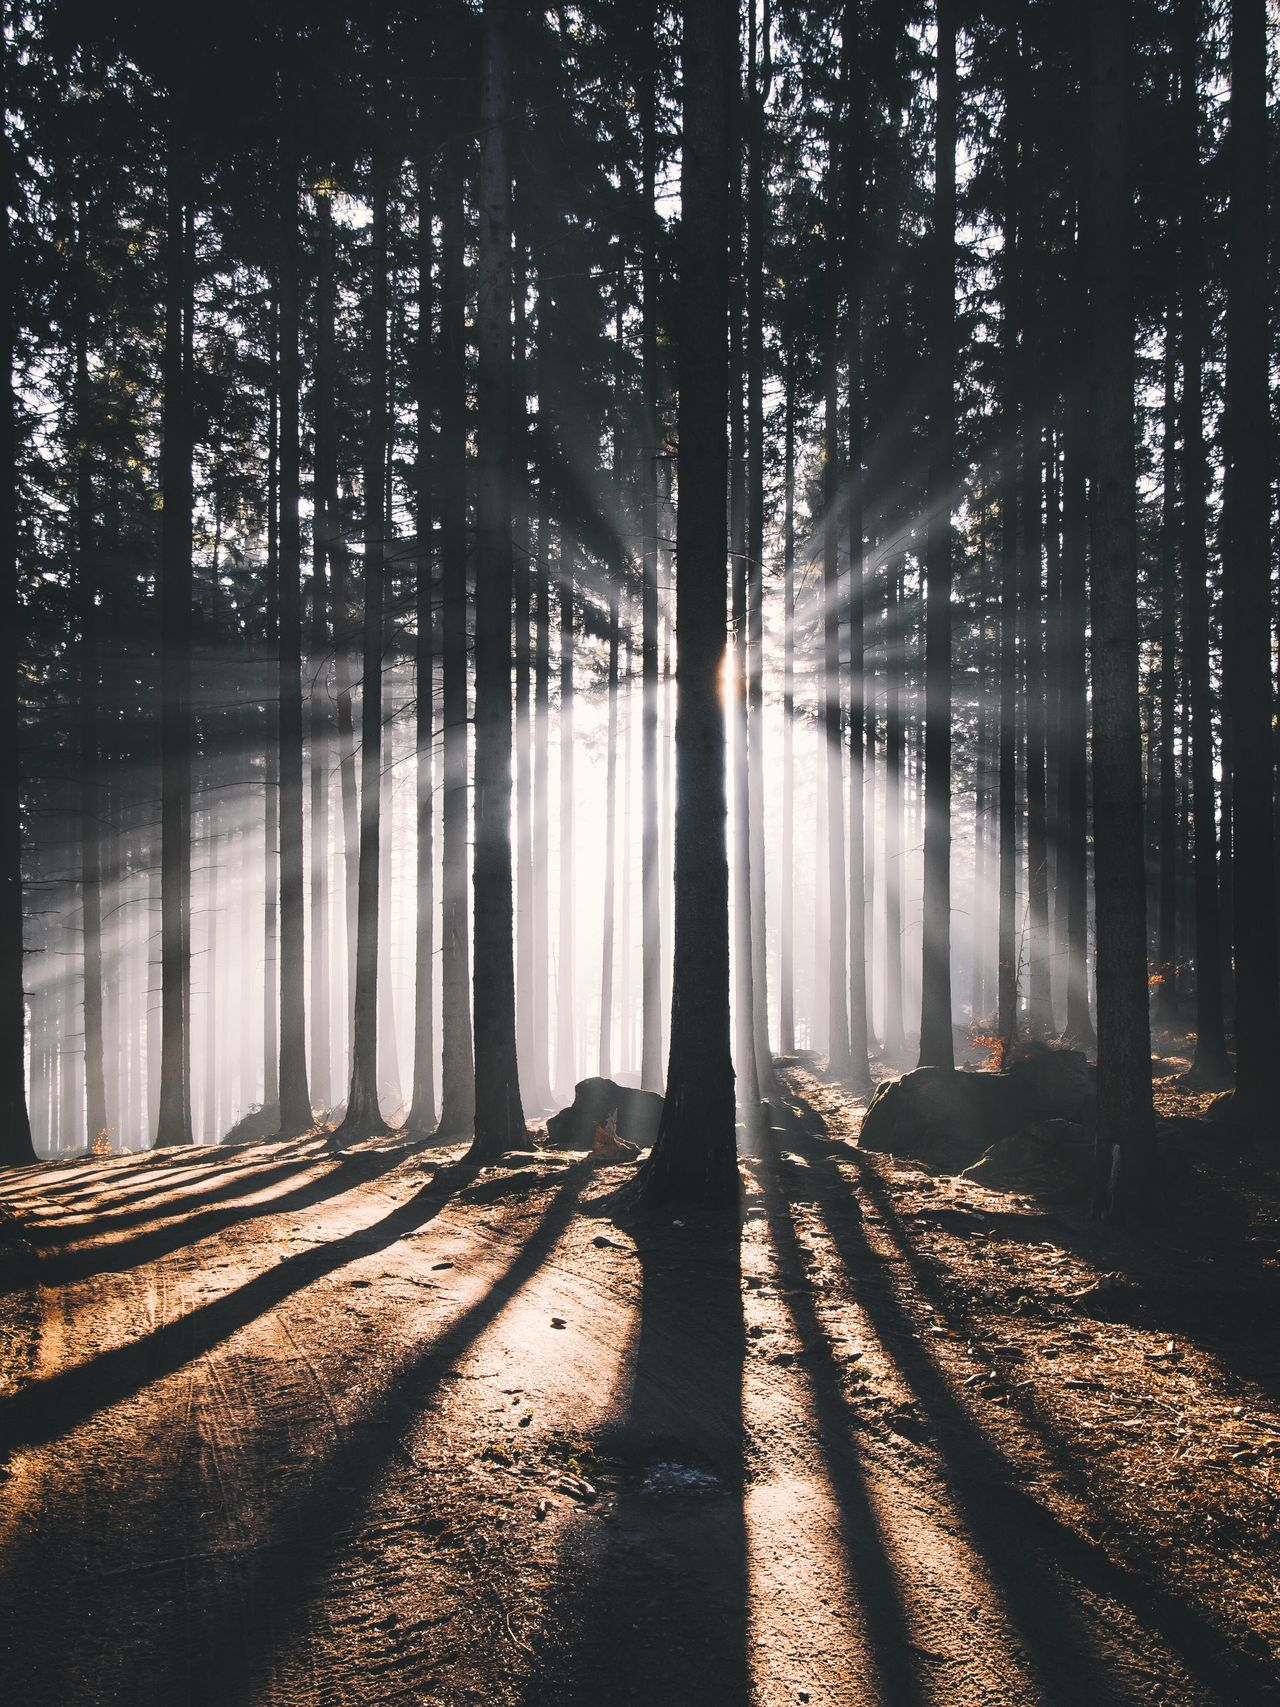 Tree Forest Nature Morning Tranquil Scene Beauty In Nature Scenics Outdoors Tranquility Tree Trunk Environment Non-urban Scene Lake Landscape Fog Day No People